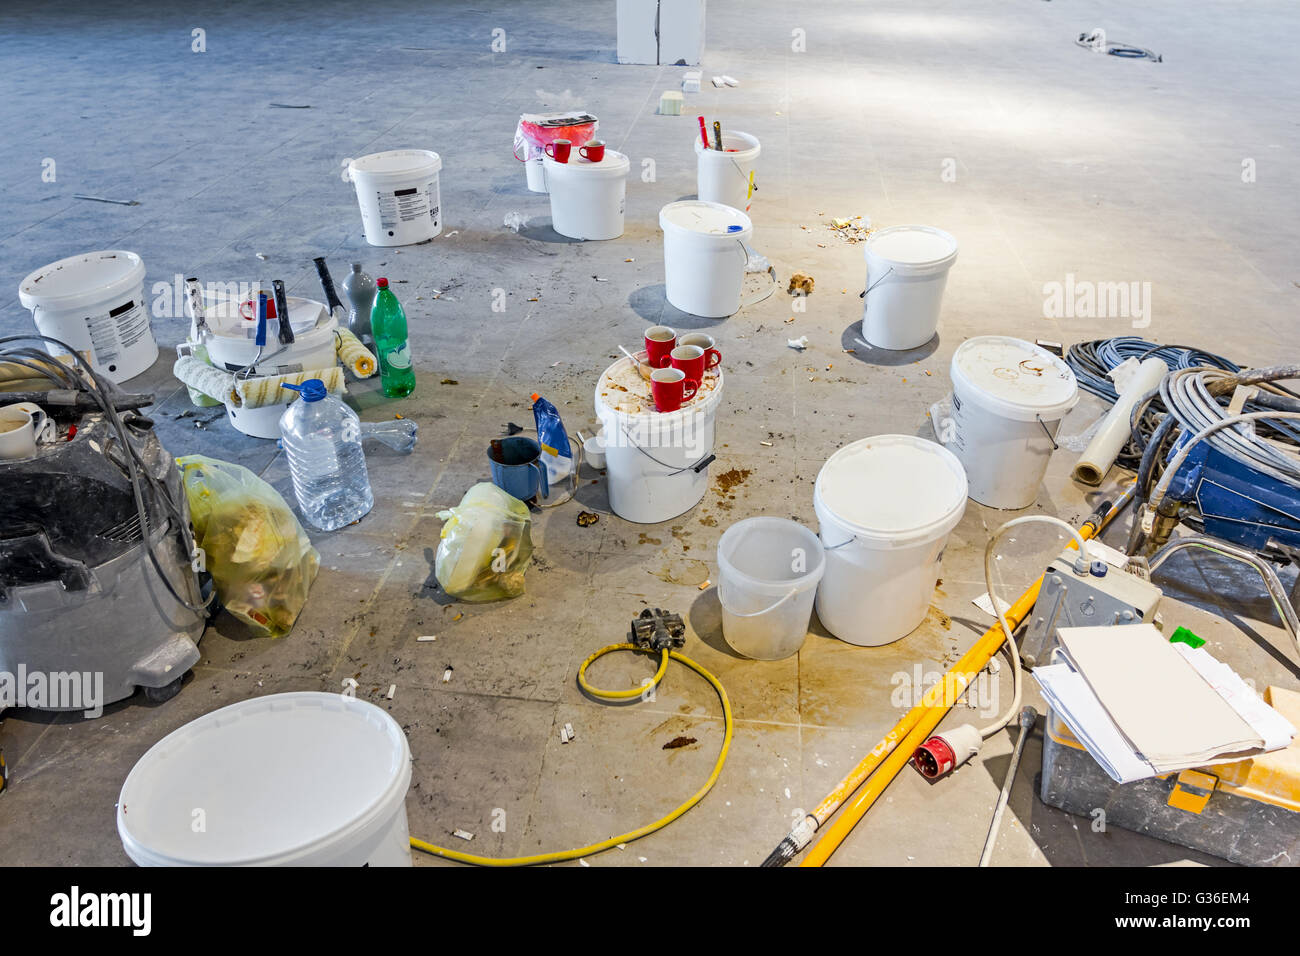 After pause workers have left messy leftovers on building site, painting cans. - Stock Image